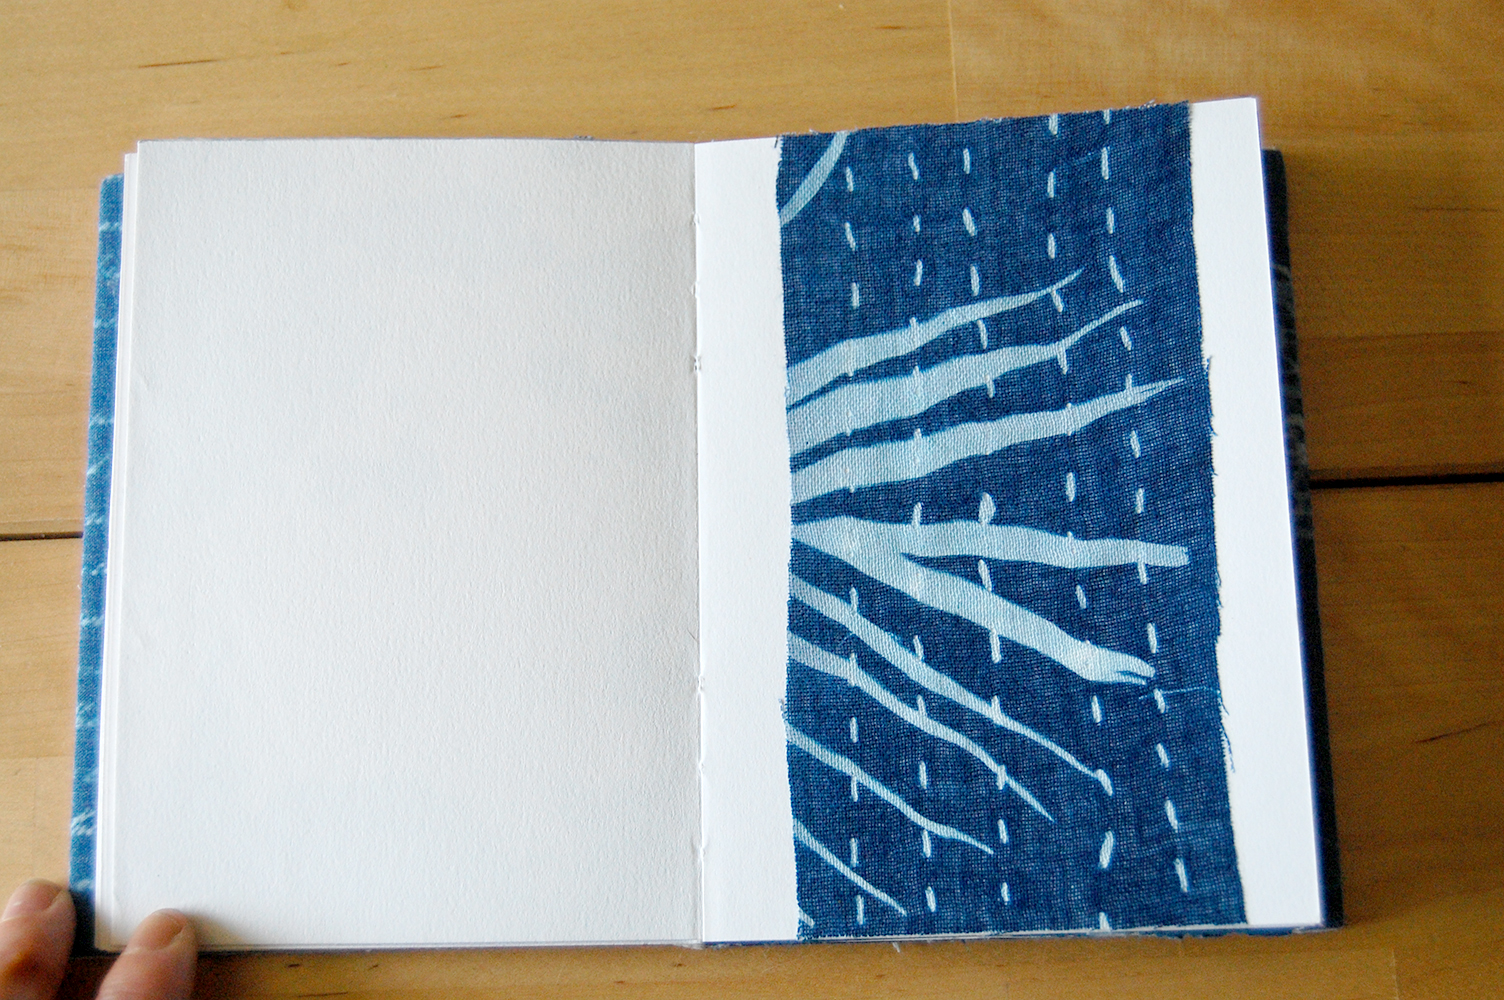 cyanotype print on cotton.